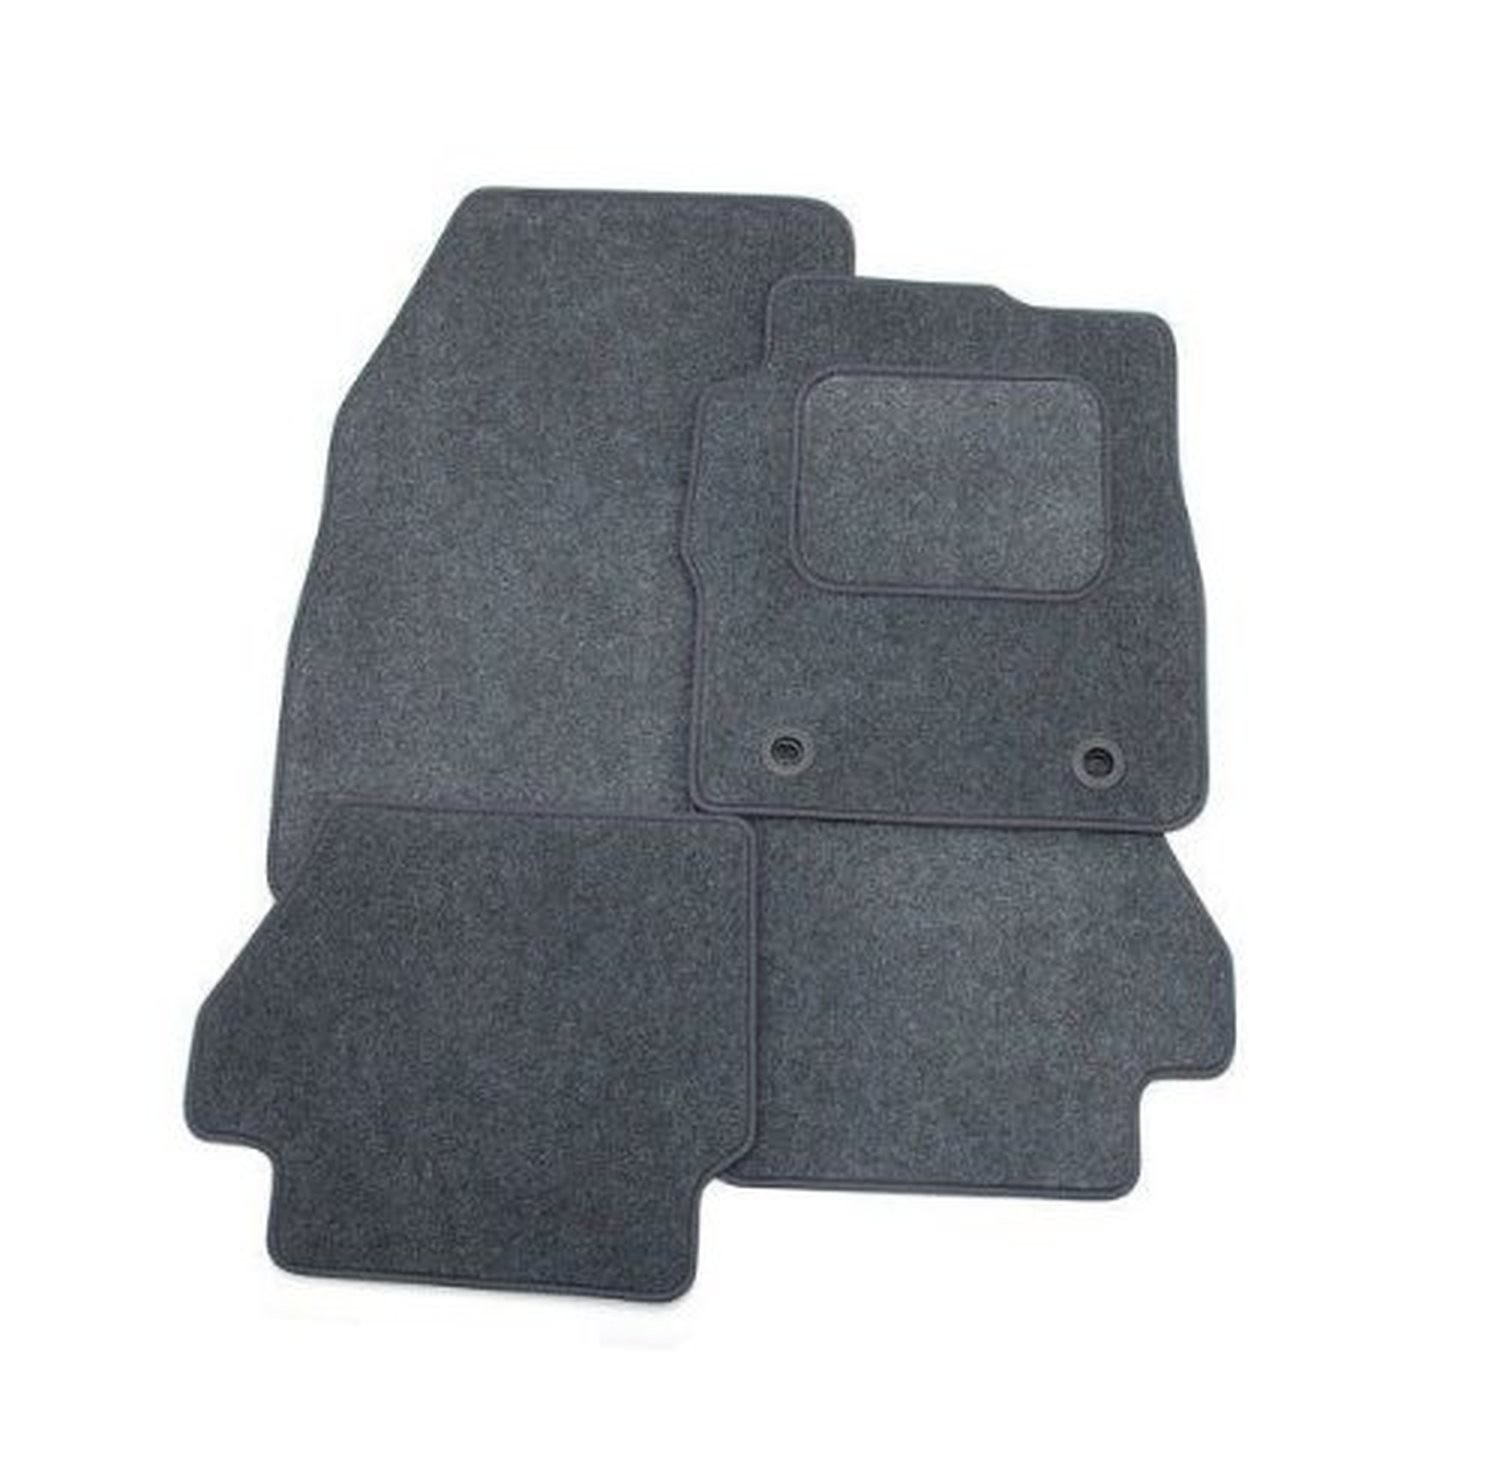 Ford Cougar 1998 - 2002 Full Set Of 4 Grey Velour Custom Exact Fit Car Carpet Floor Mats Twist-n-Turn Fixings By AoE PerformanceTM